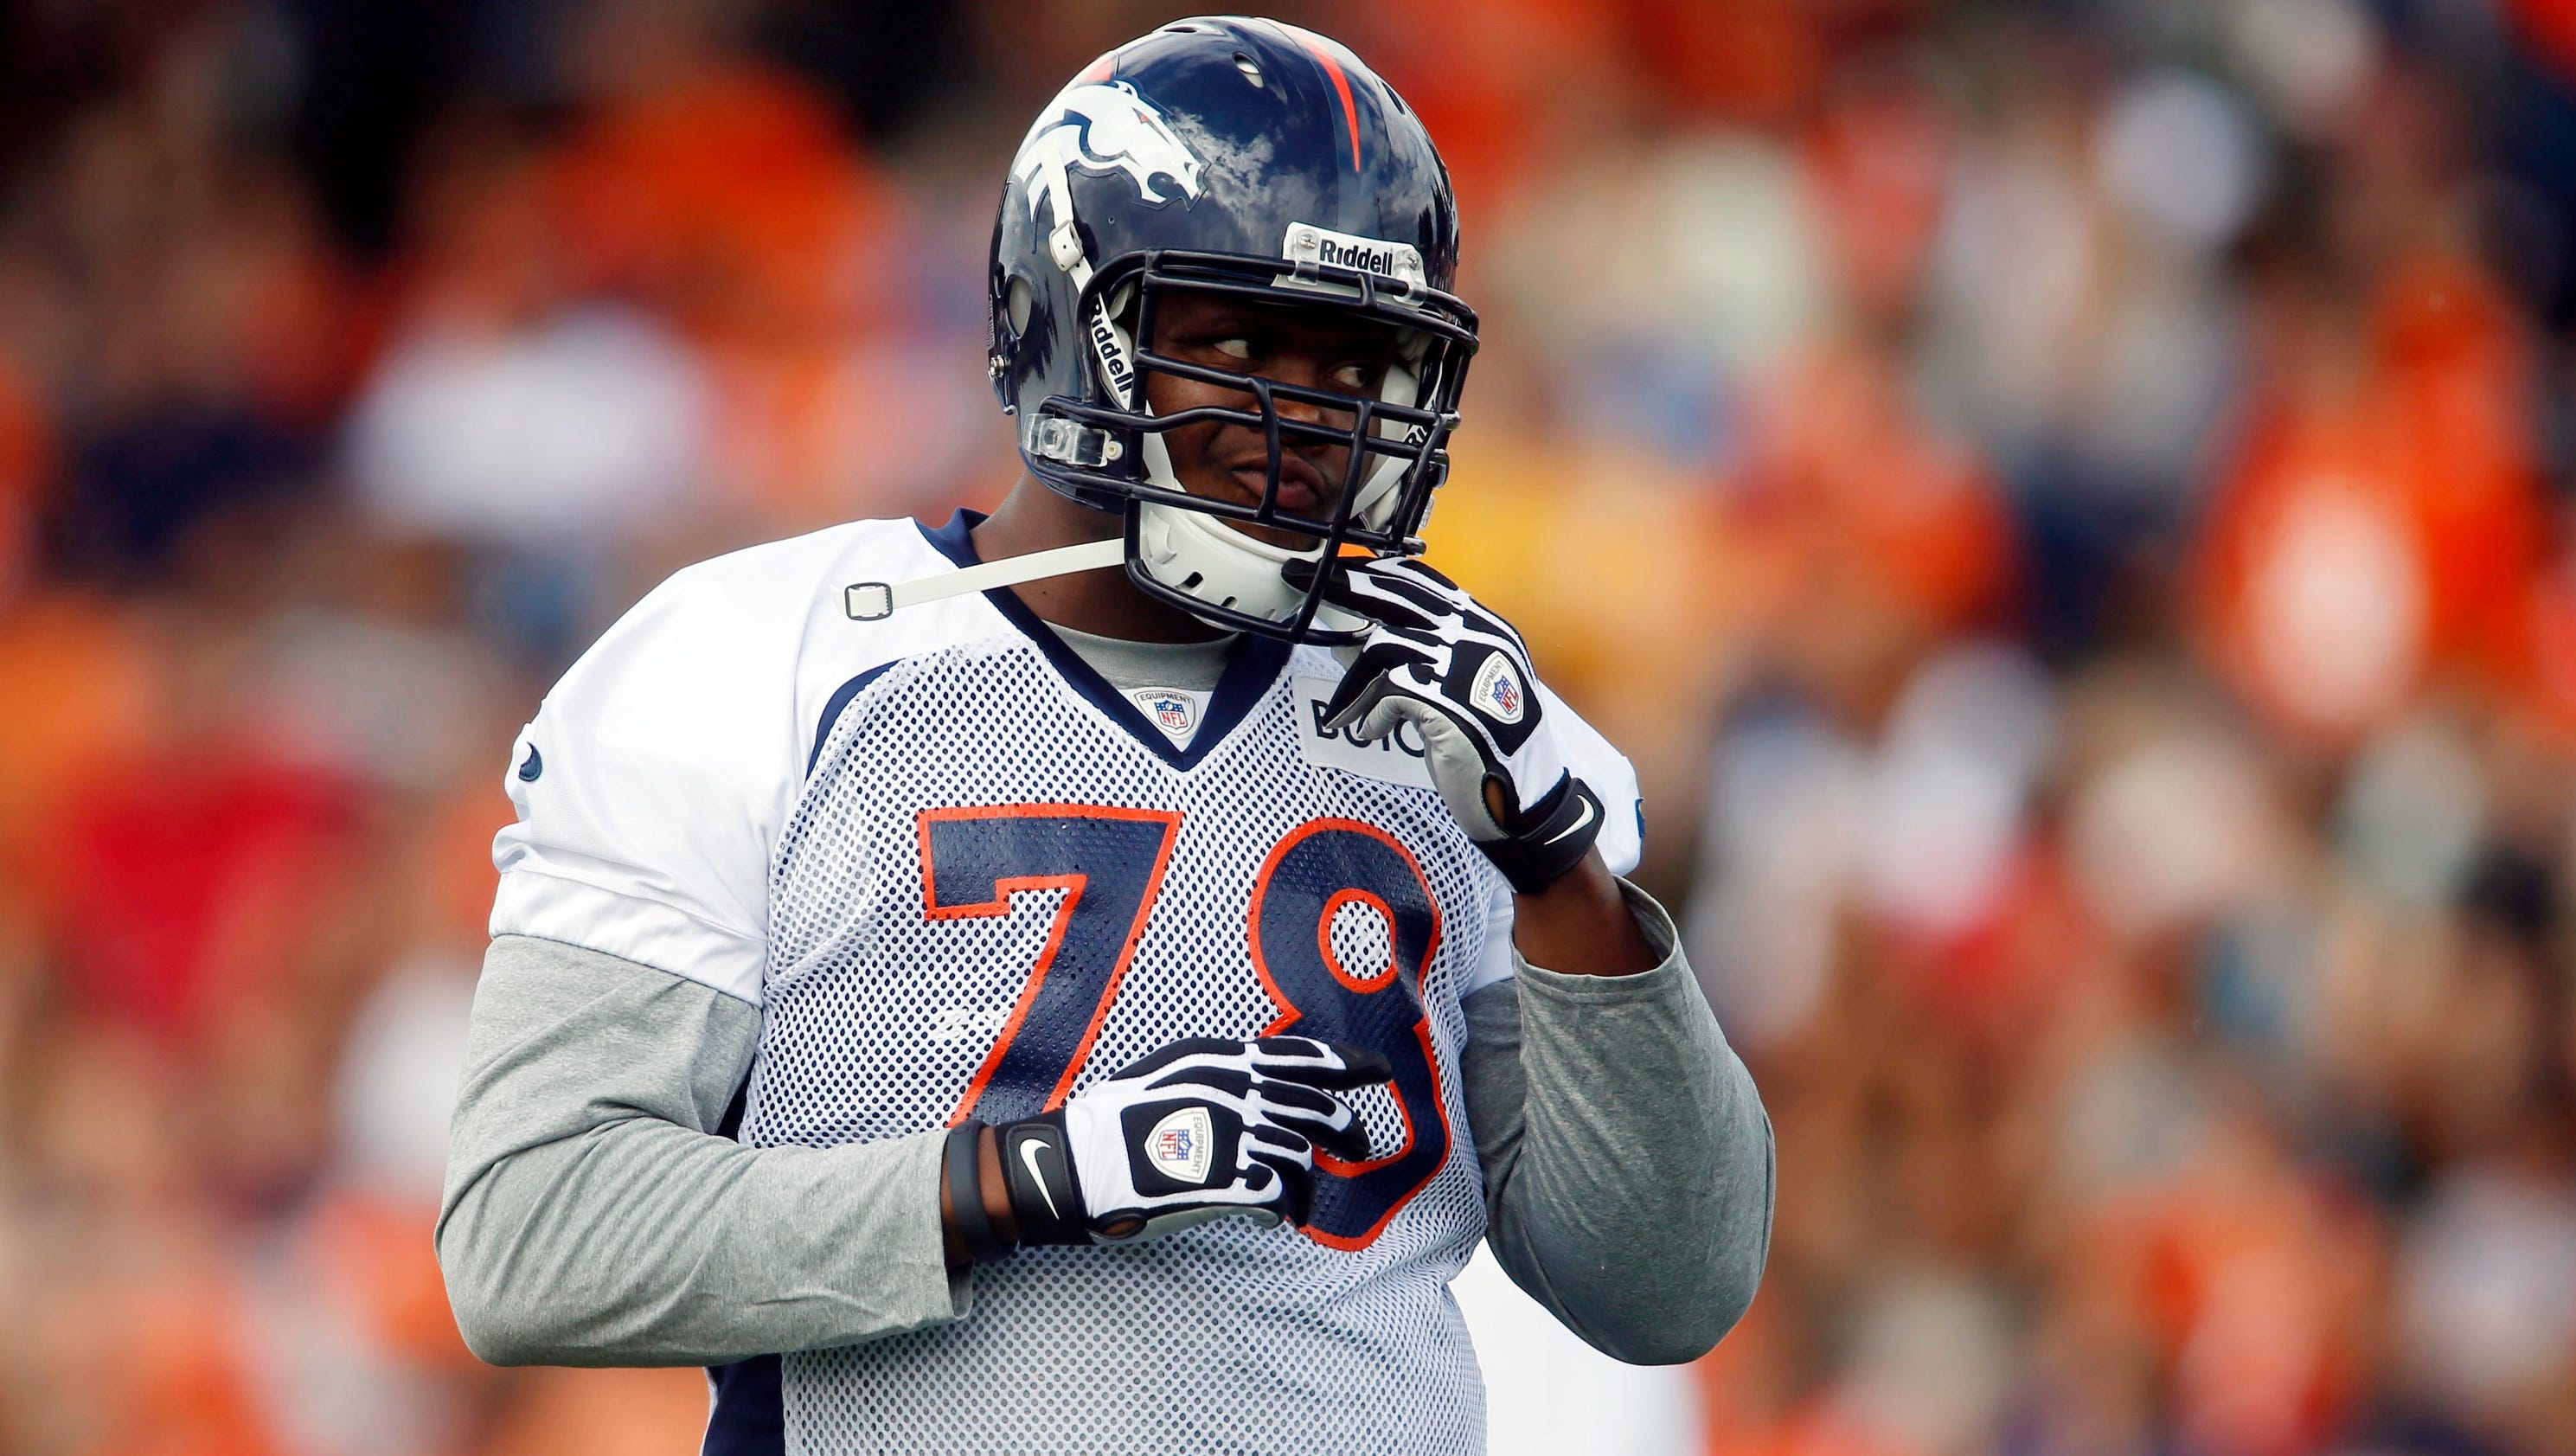 Broncos lose LT Ryan Clady to seasonending Lisfranc injury